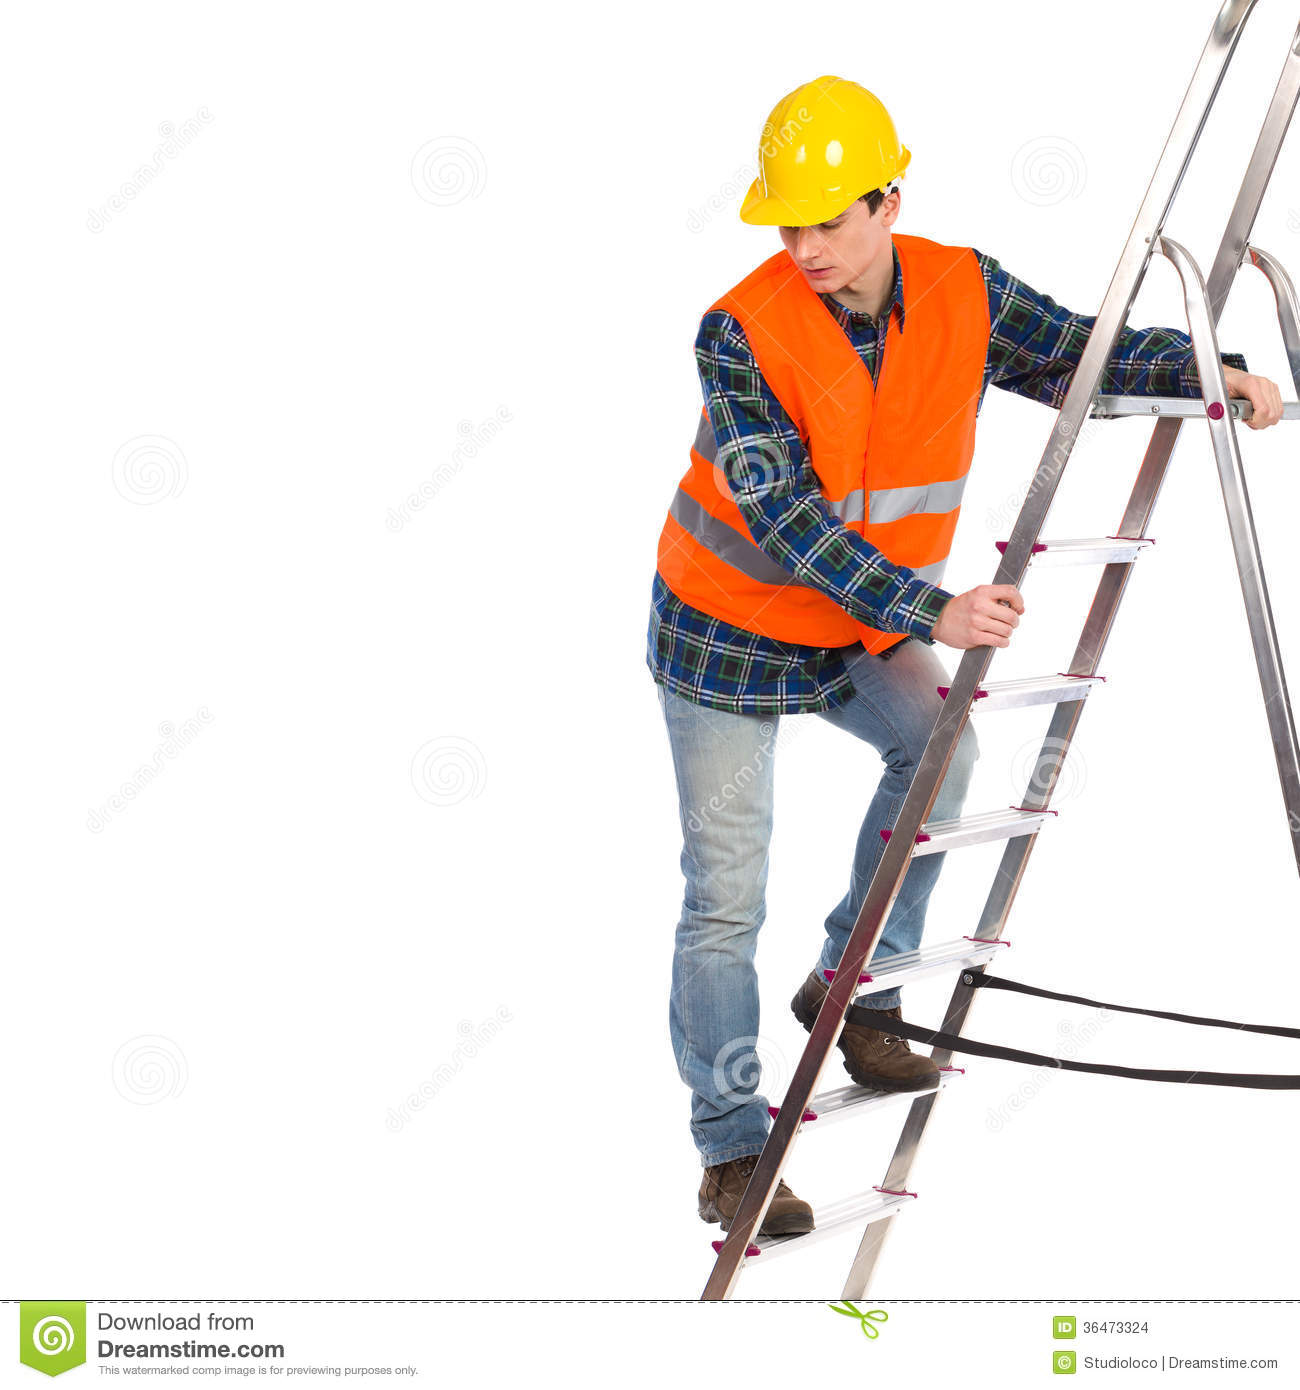 Construction Worker In Reflective Clothing Climbing A Ladder ... for Worker Climbing Ladder  83fiz